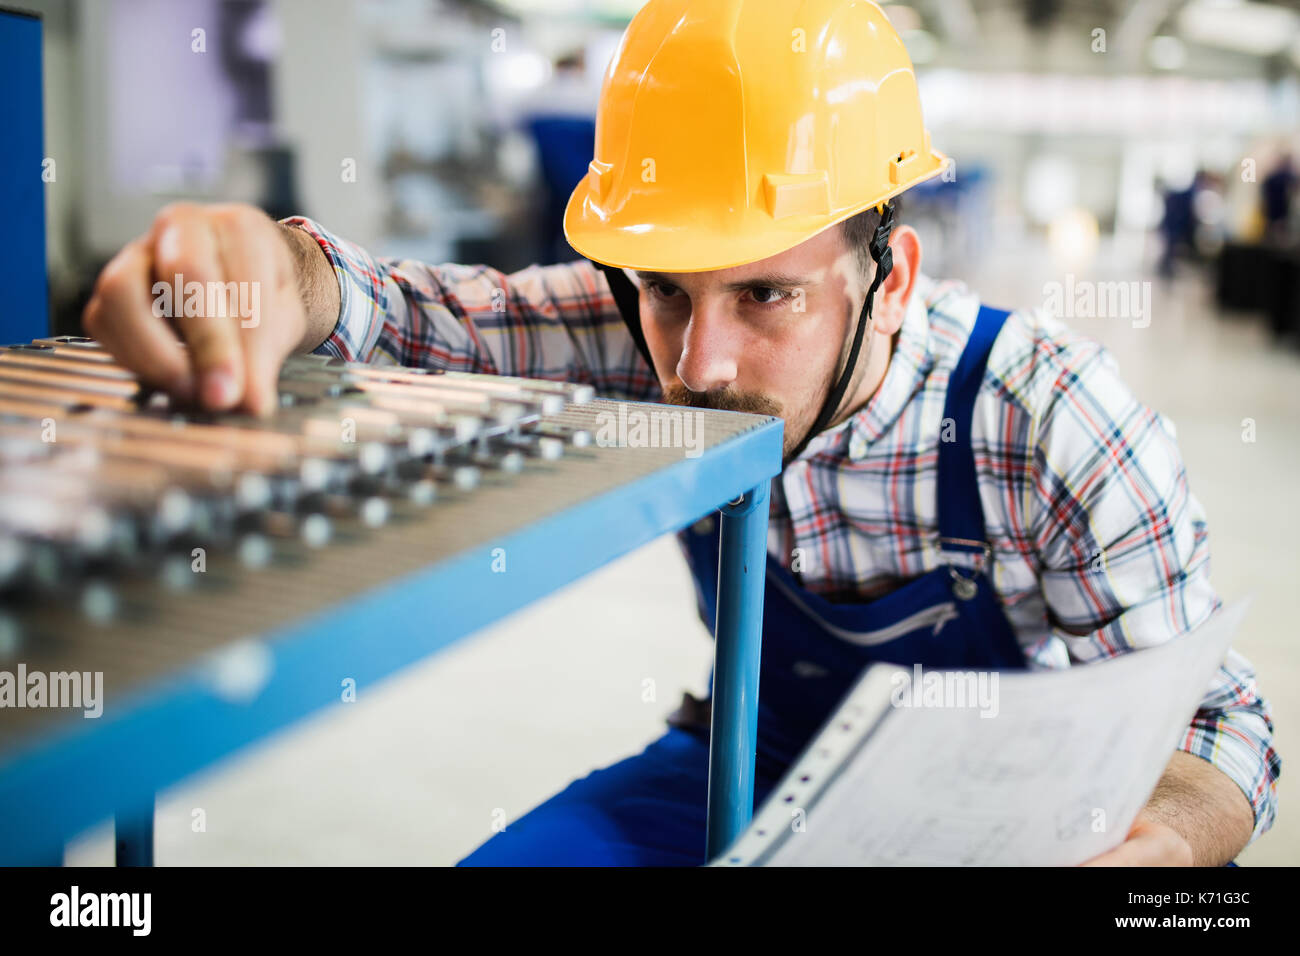 Supervisor doing quality control and pruduction check in factory - Stock Image